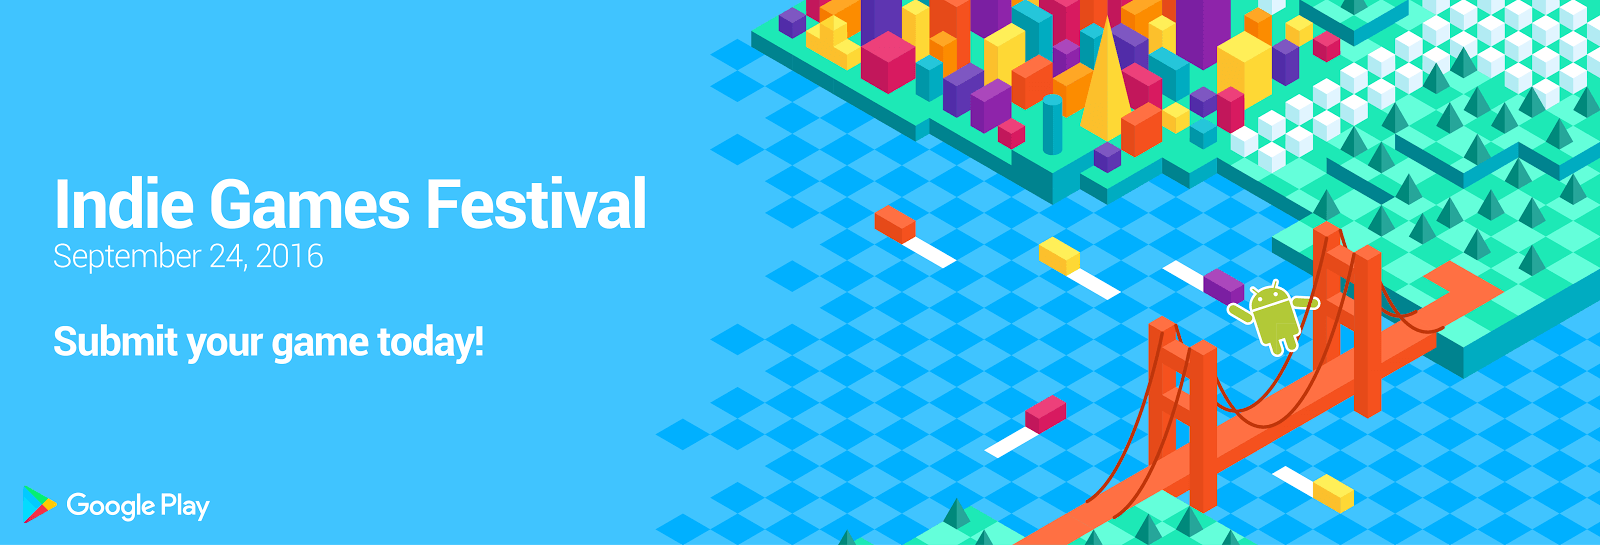 Google's 'Indie Games Festival' will showcase Android games